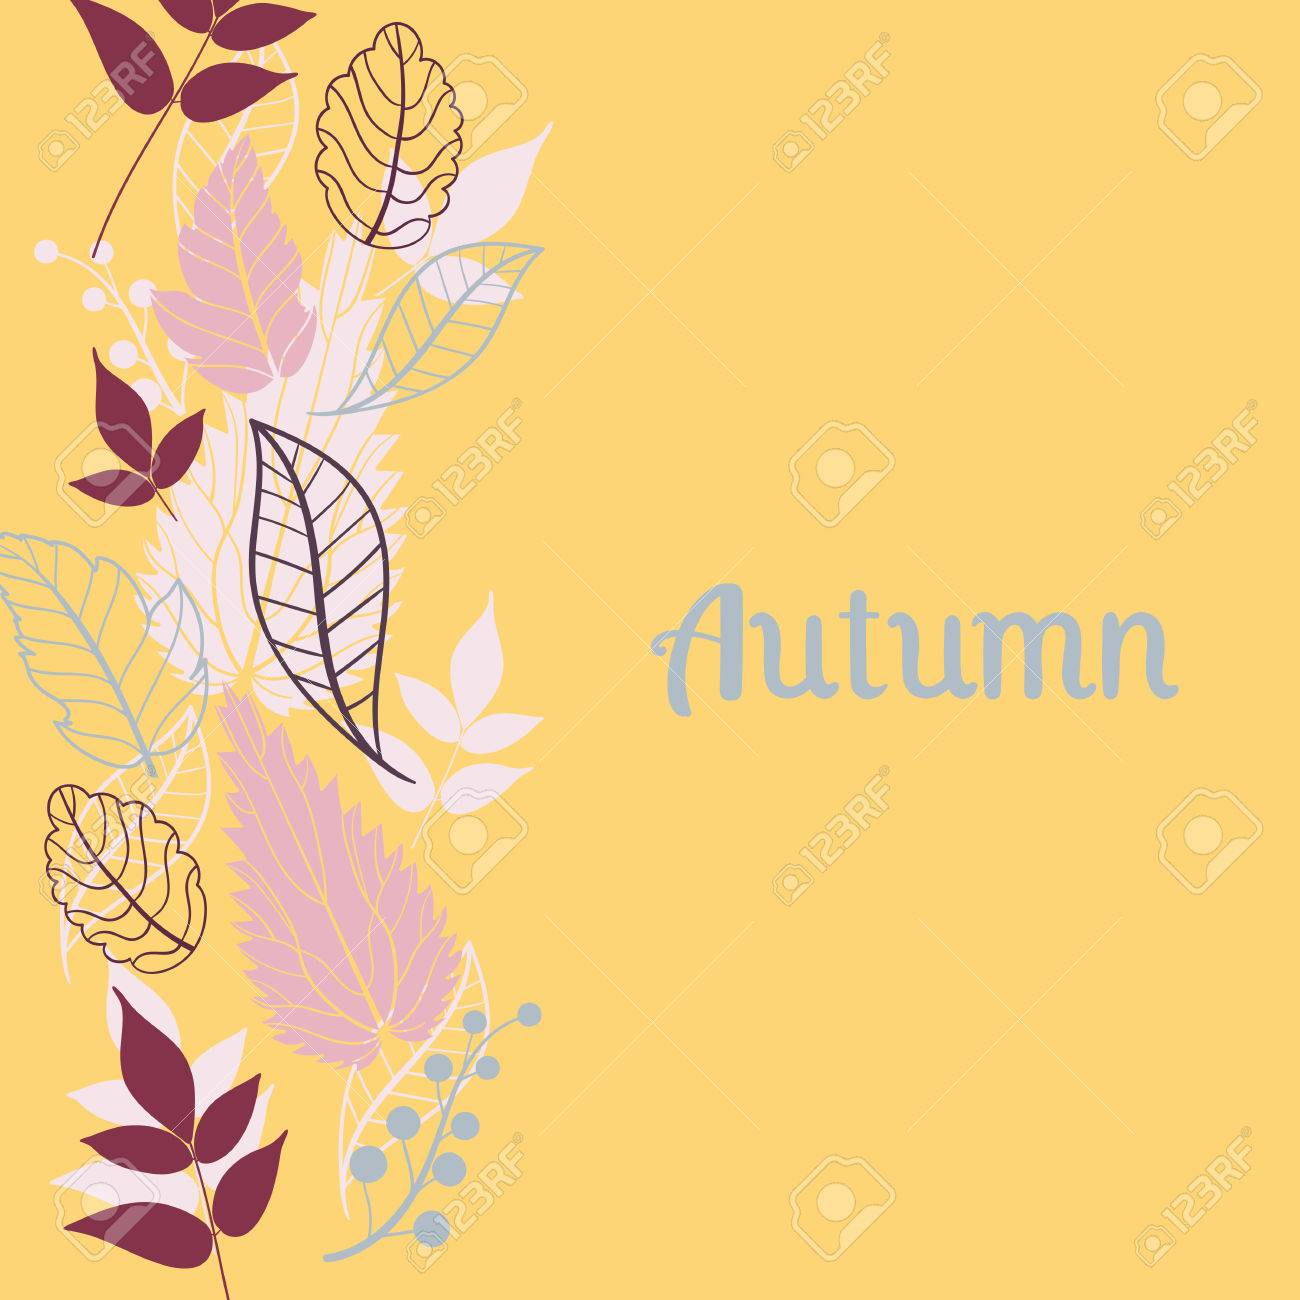 Autumn falling leaves backgroundn be used for wallpaperdesign of can be used for wallpaperdesign of invitationcard stopboris Gallery